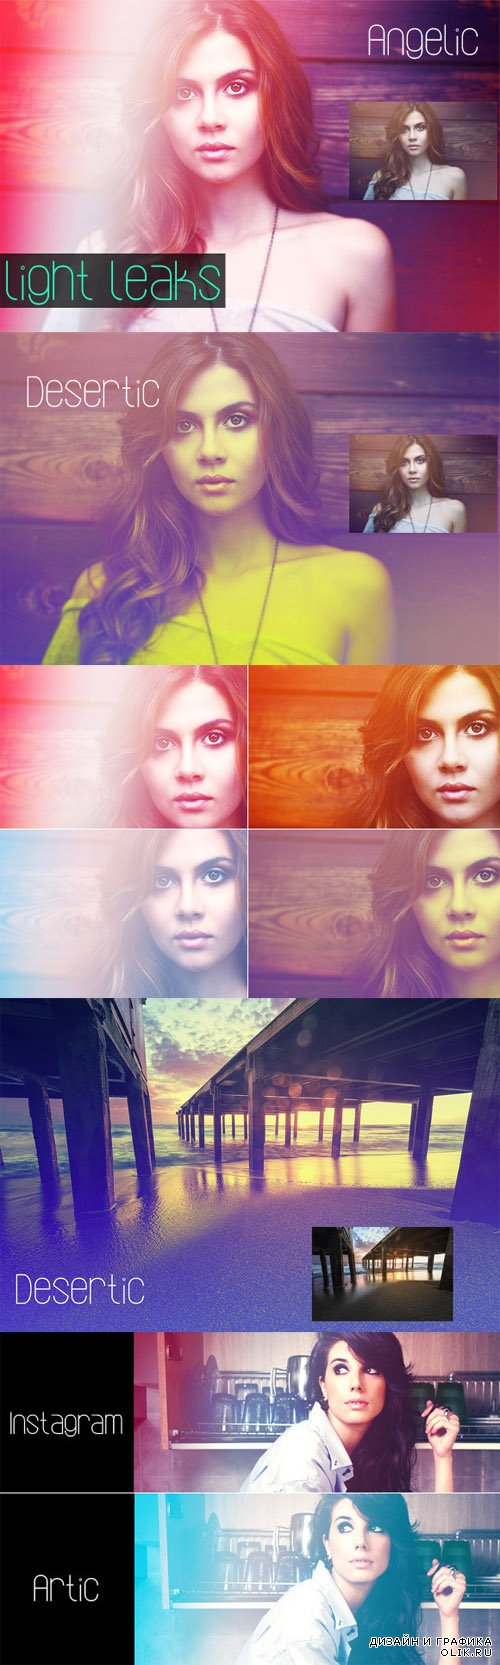 CreativeMarket - 8 Light Leaks | PS Actions 46972